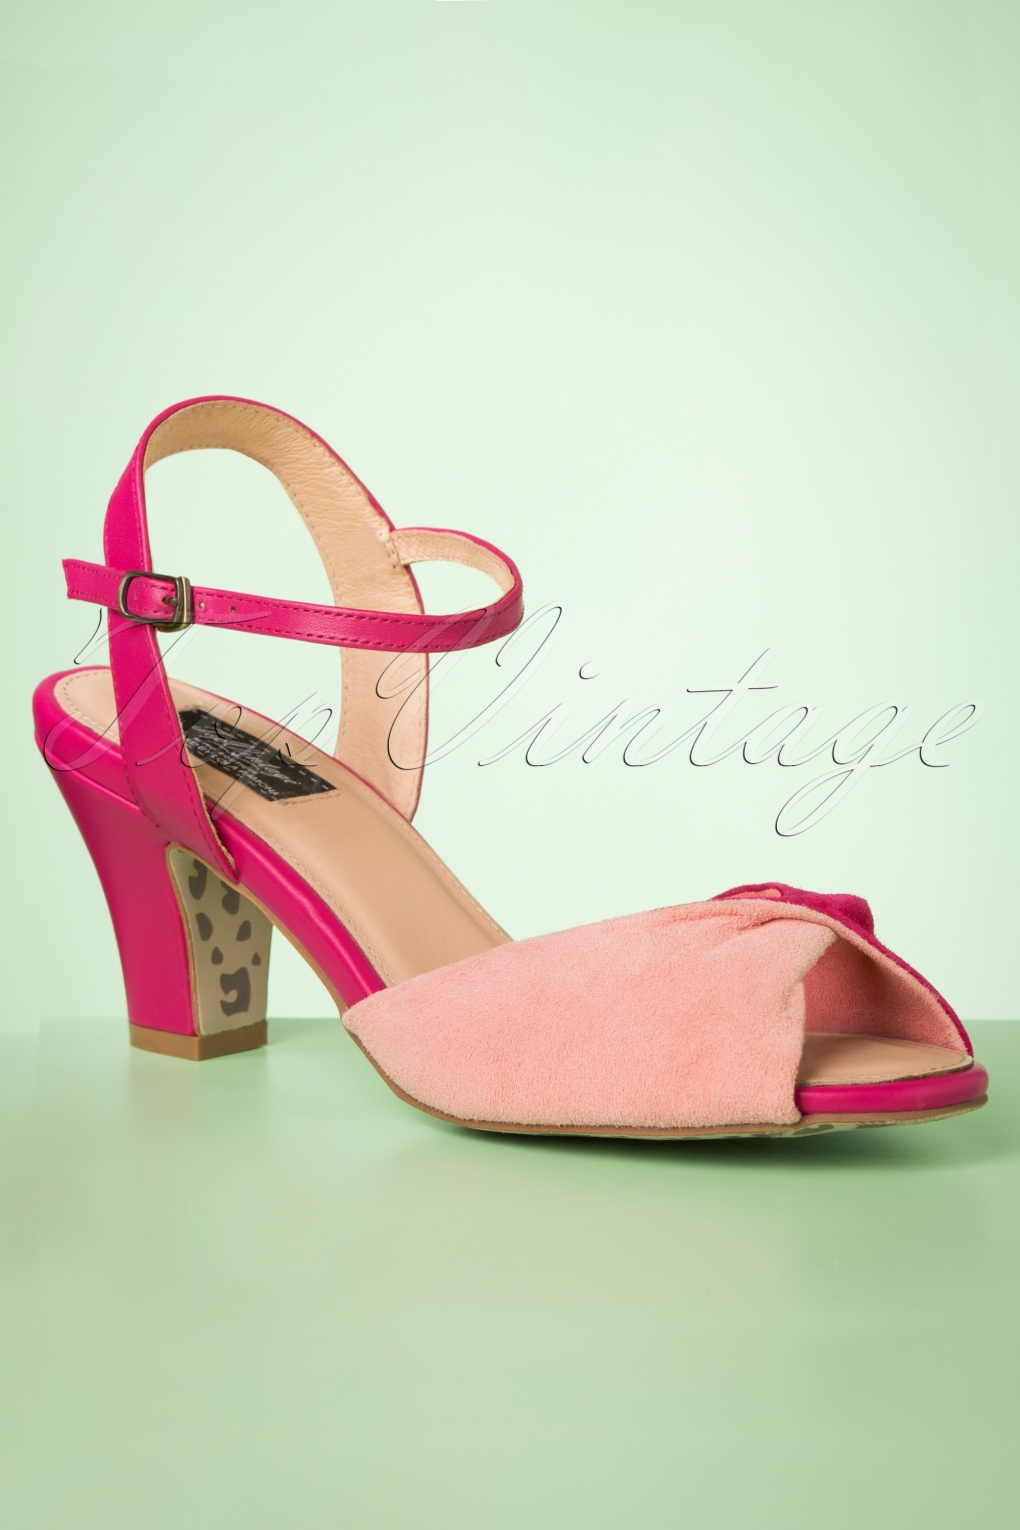 1950s Style Shoes | Heels, Flats, Saddle Shoes 50s Ava Its A Two Tone Thing Sandals in Pink £66.80 AT vintagedancer.com